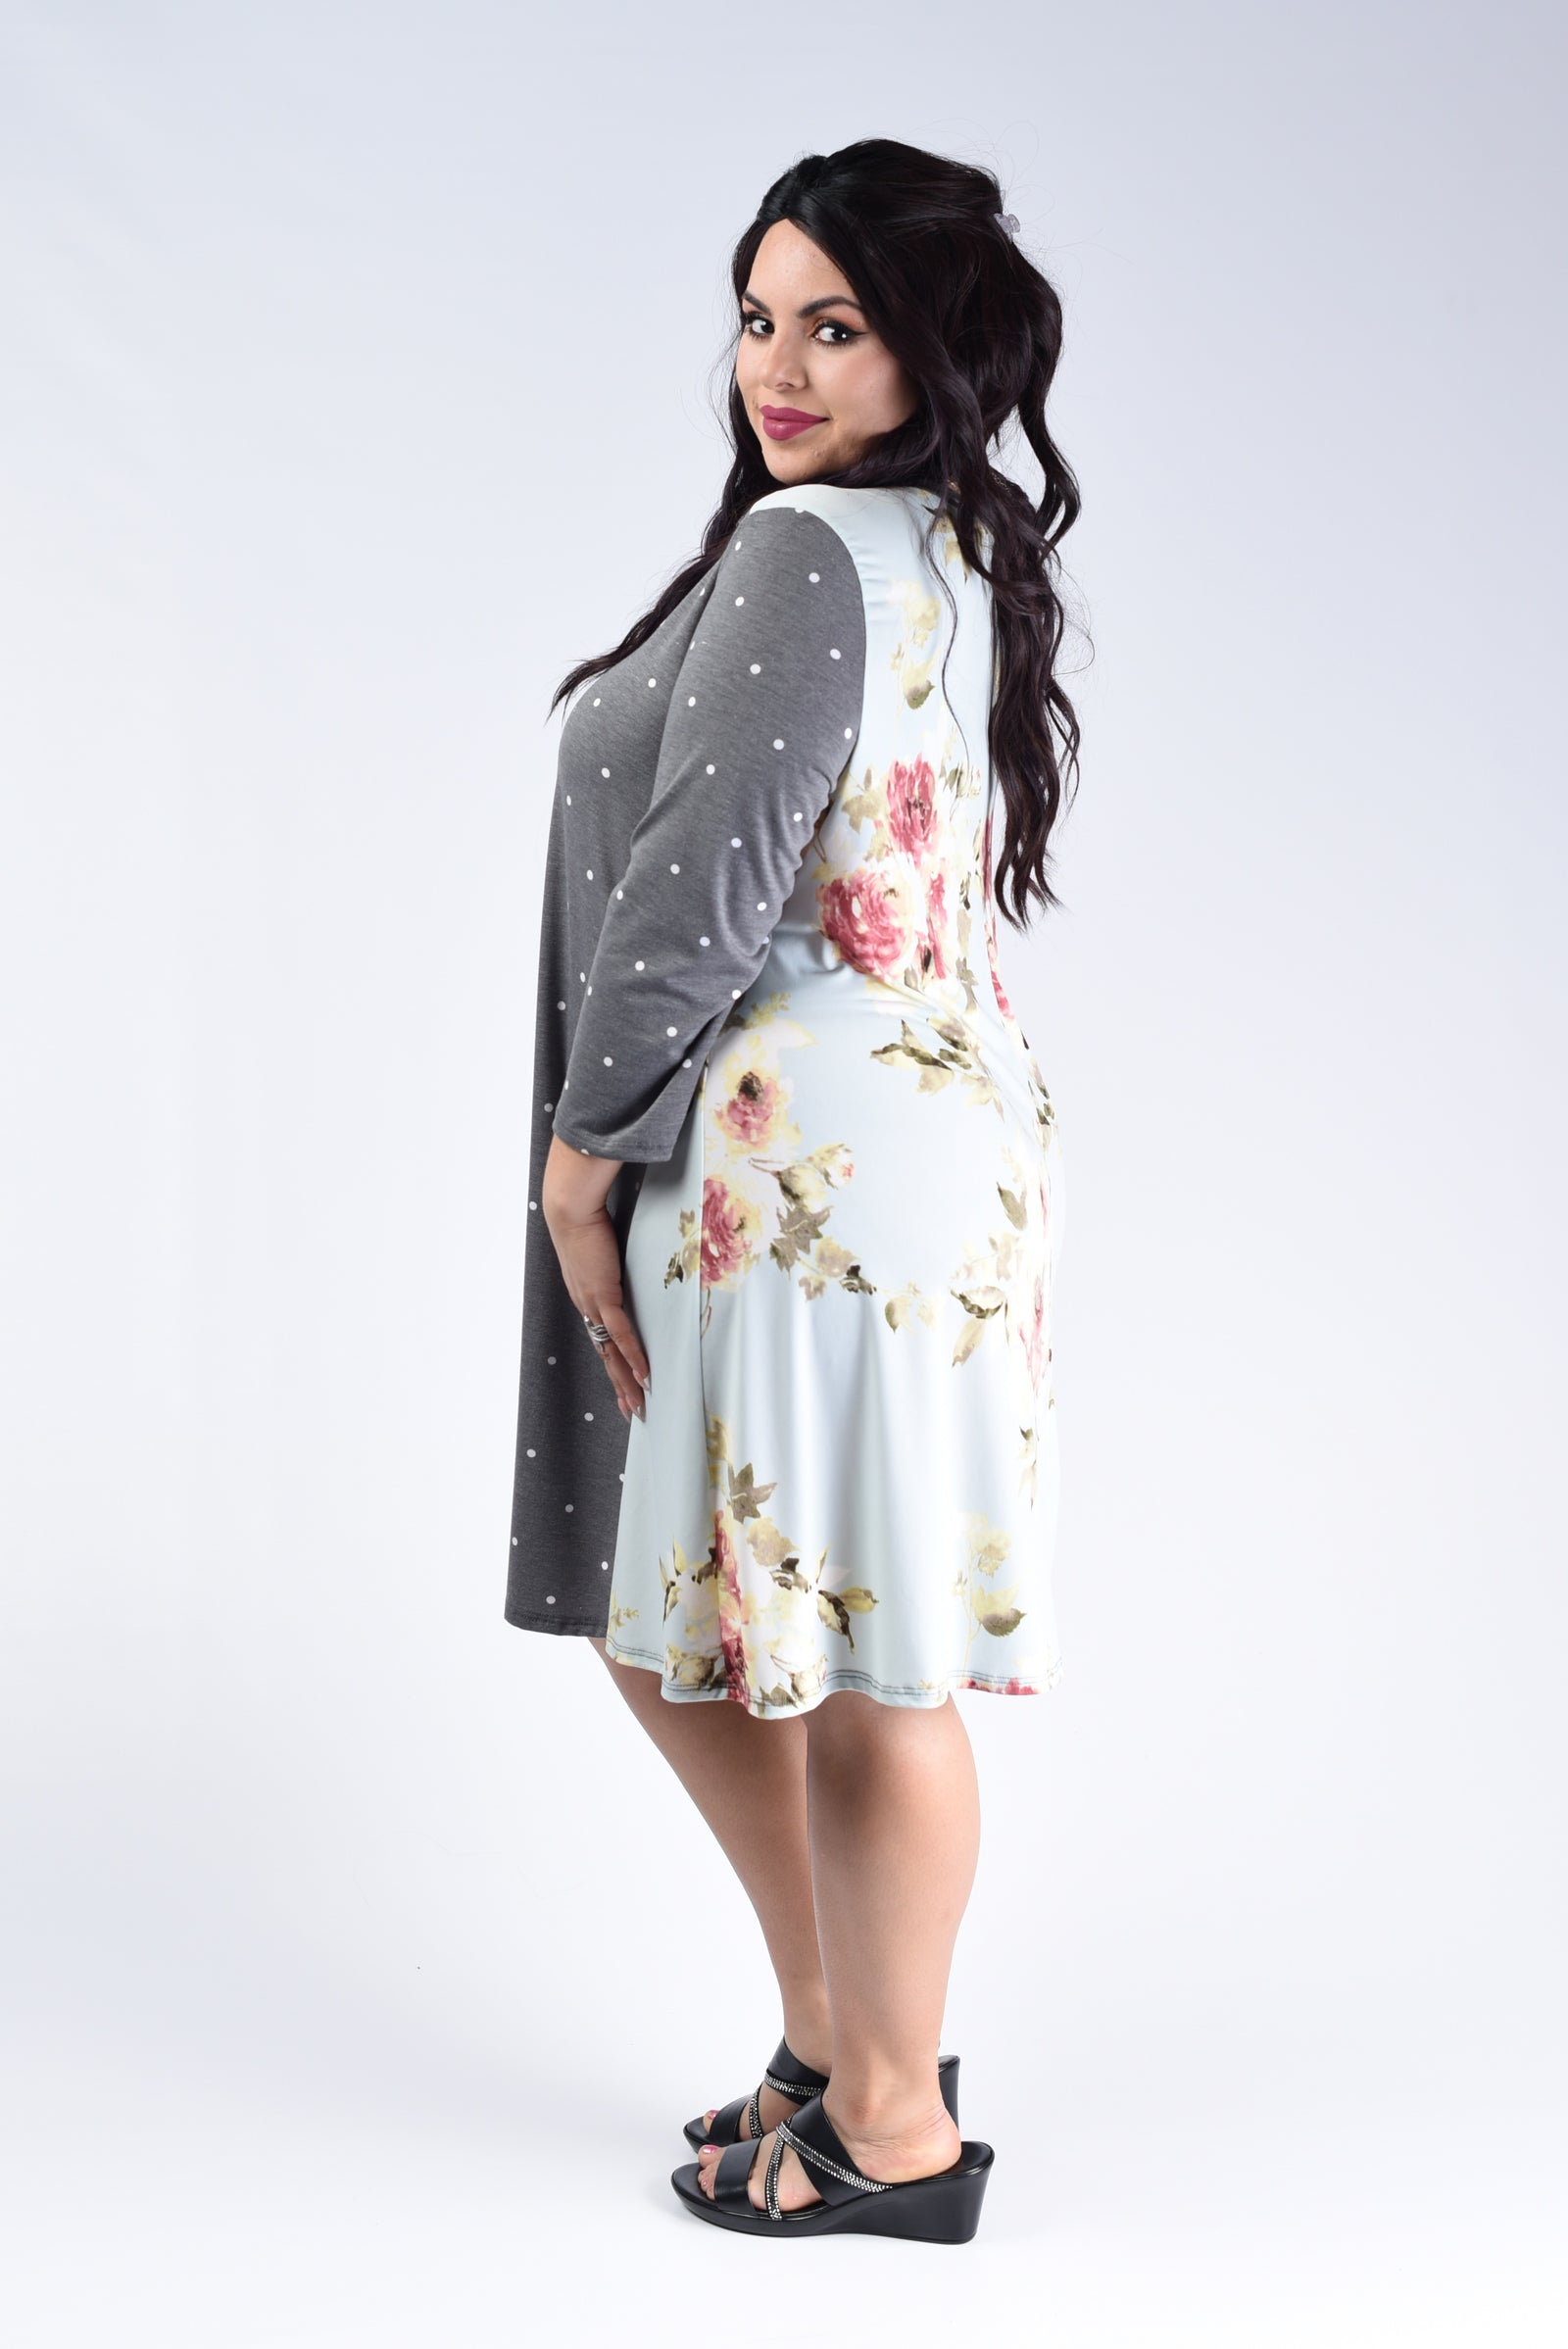 Grey Polka Dot & Floral Dress - www.mycurvystore.com - Curvy Boutique - Plus Size